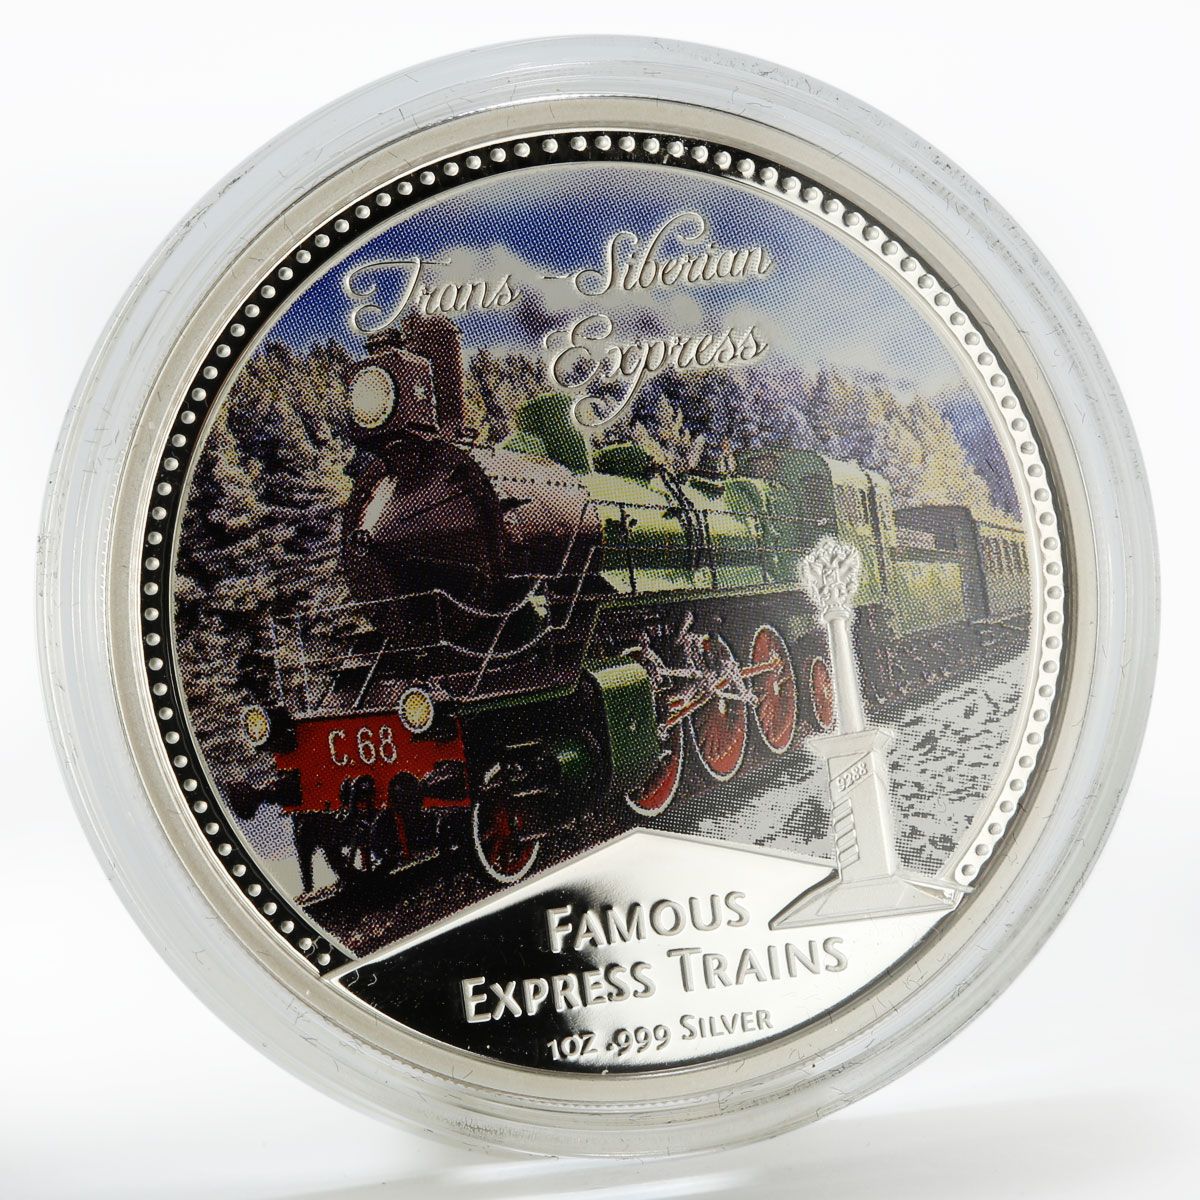 Niue set 4 coins Famous Express Trains proof colored silver 2010